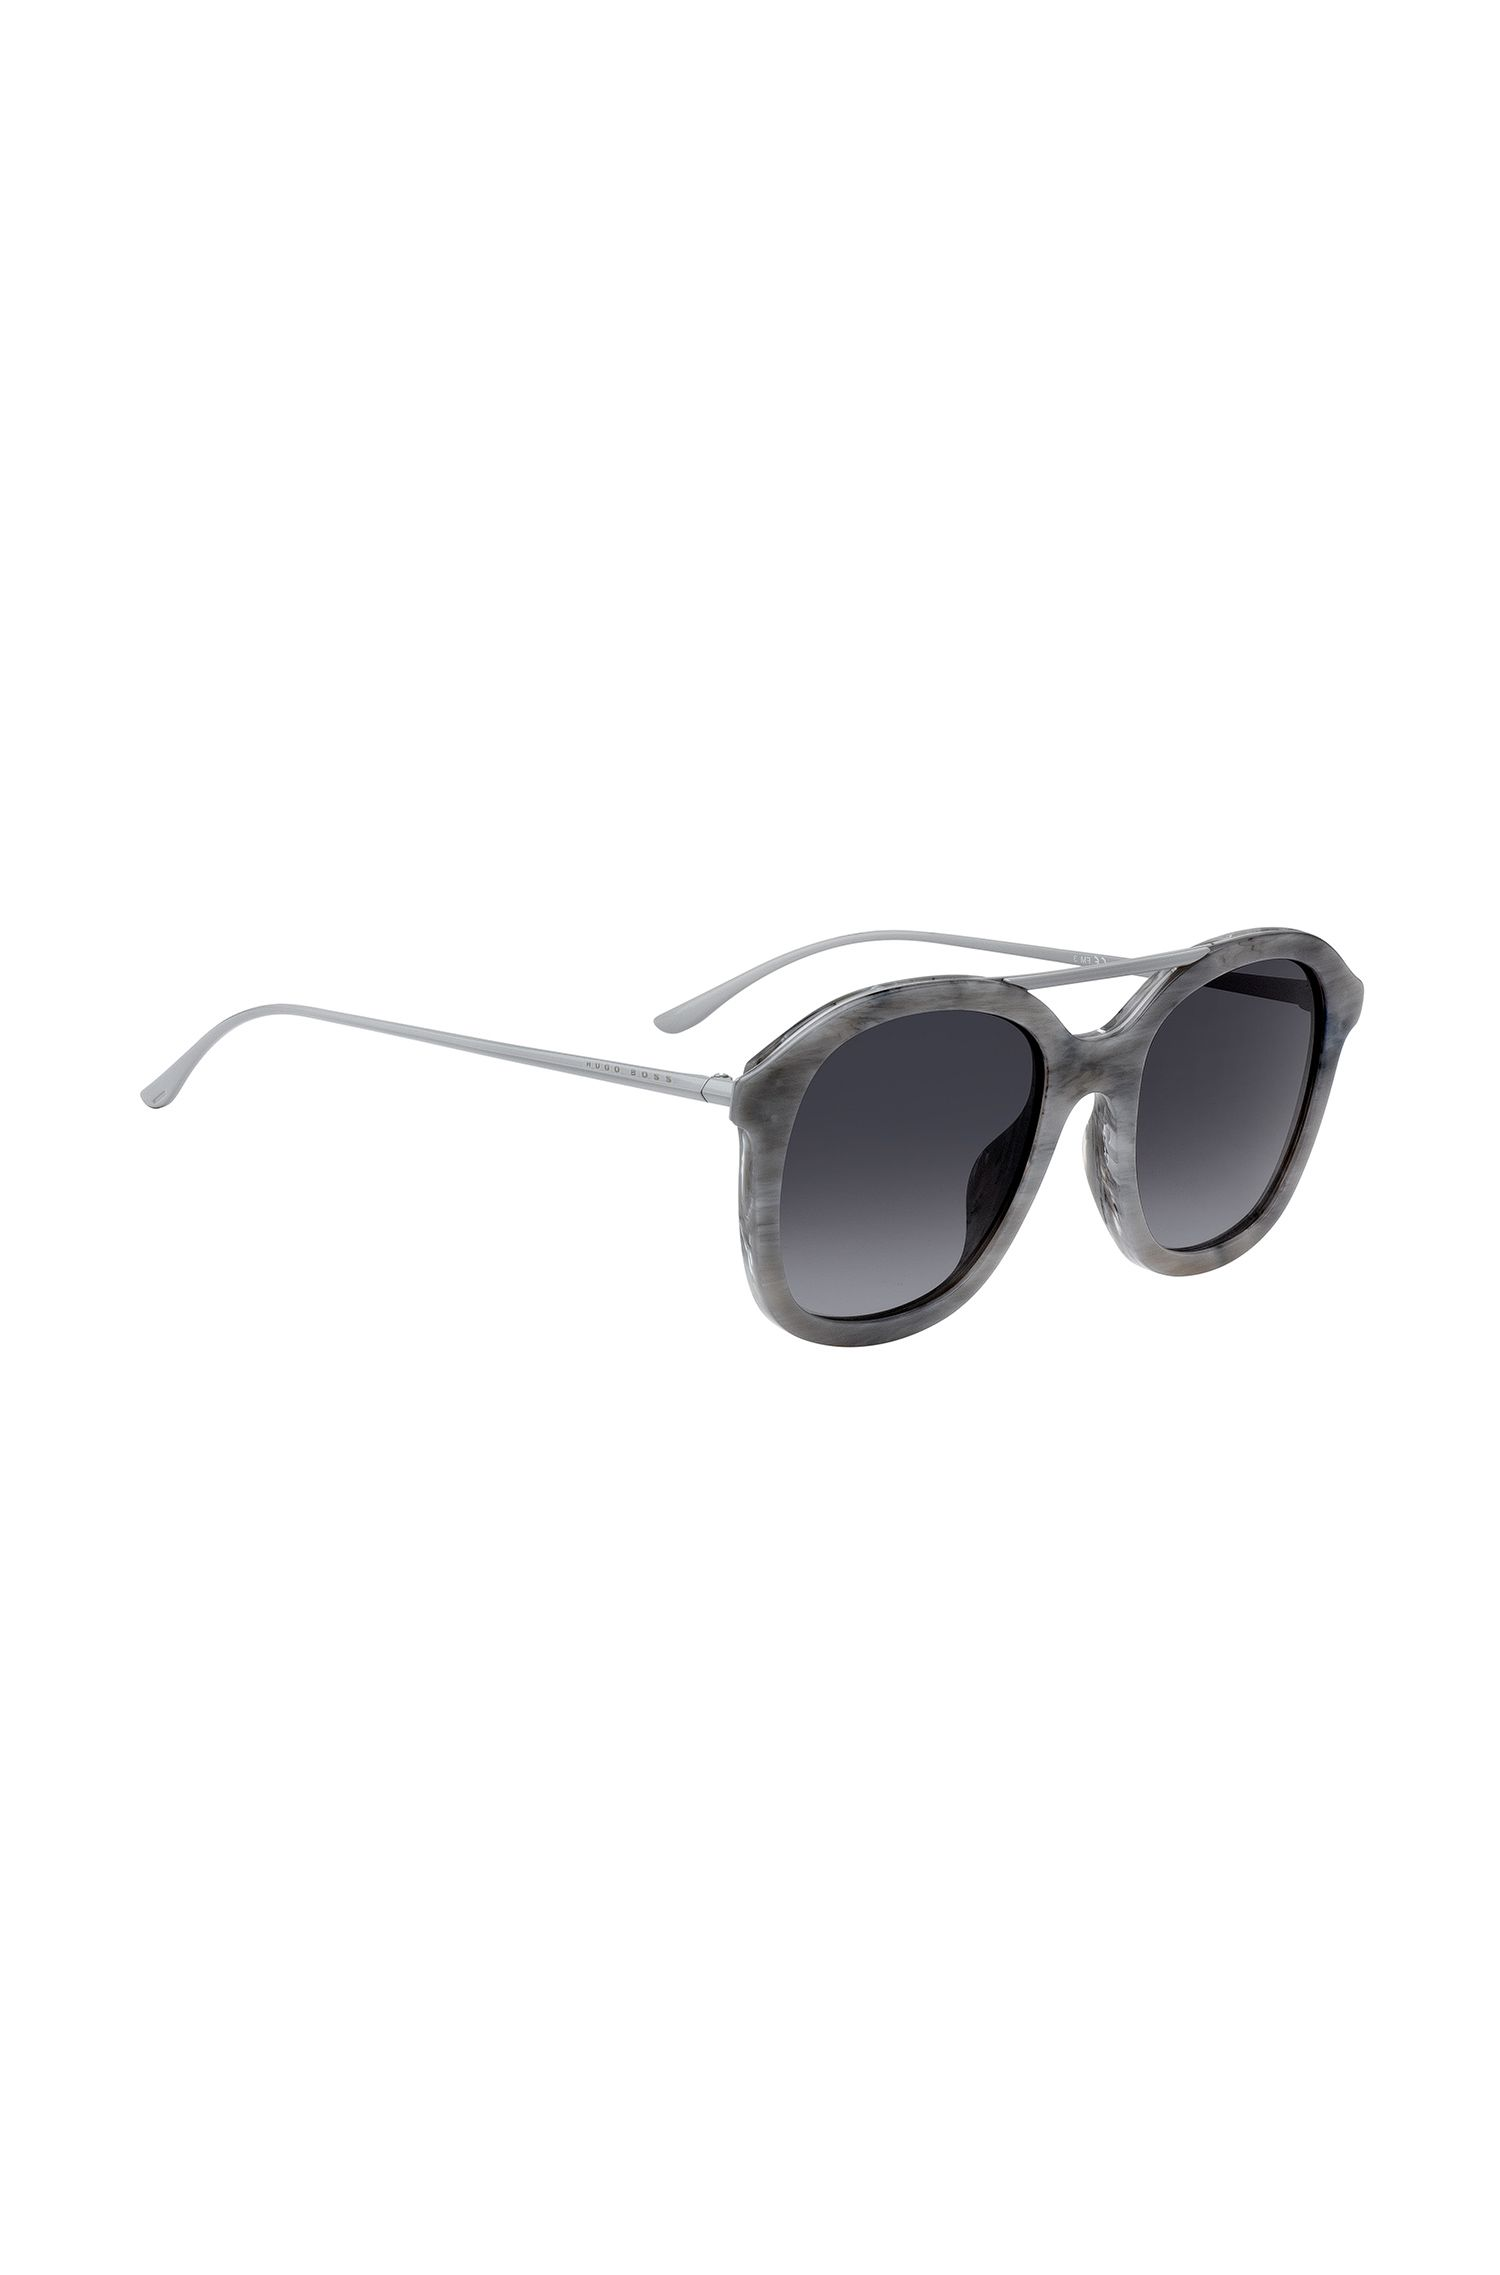 Acetate sunglasses with grey patterned frames, Grey